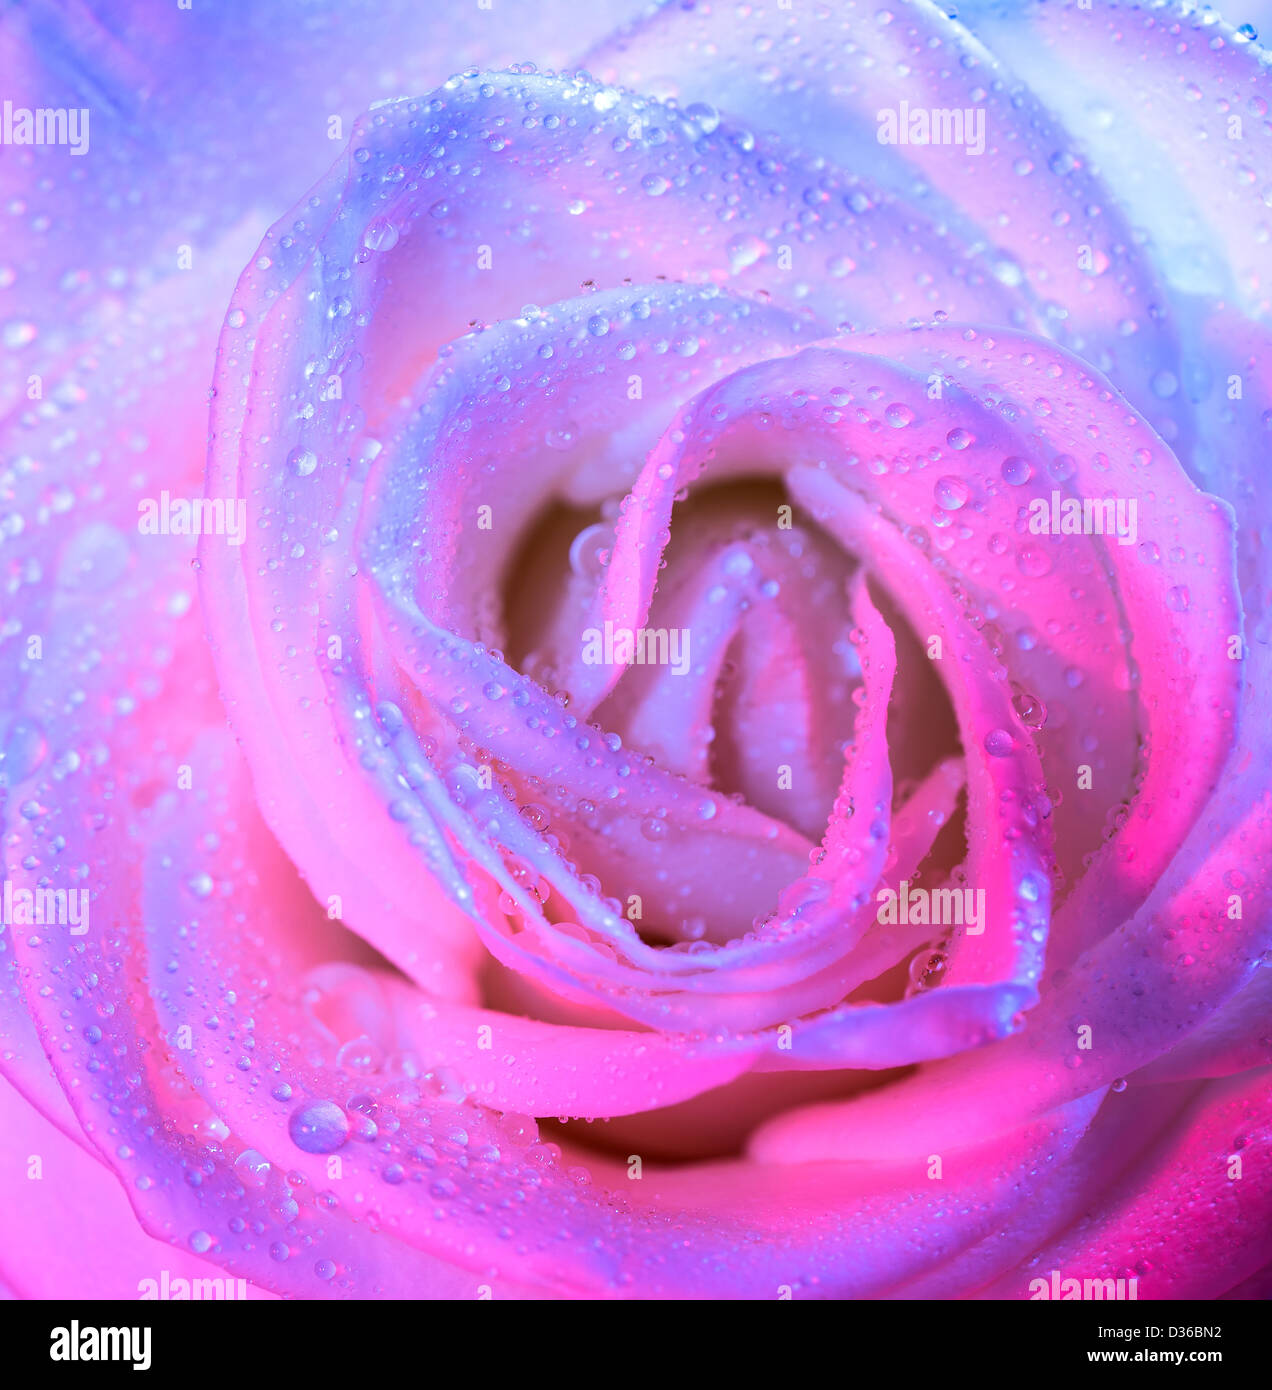 Photo Of Beautiful White Rose Background With Pink Light Abstract